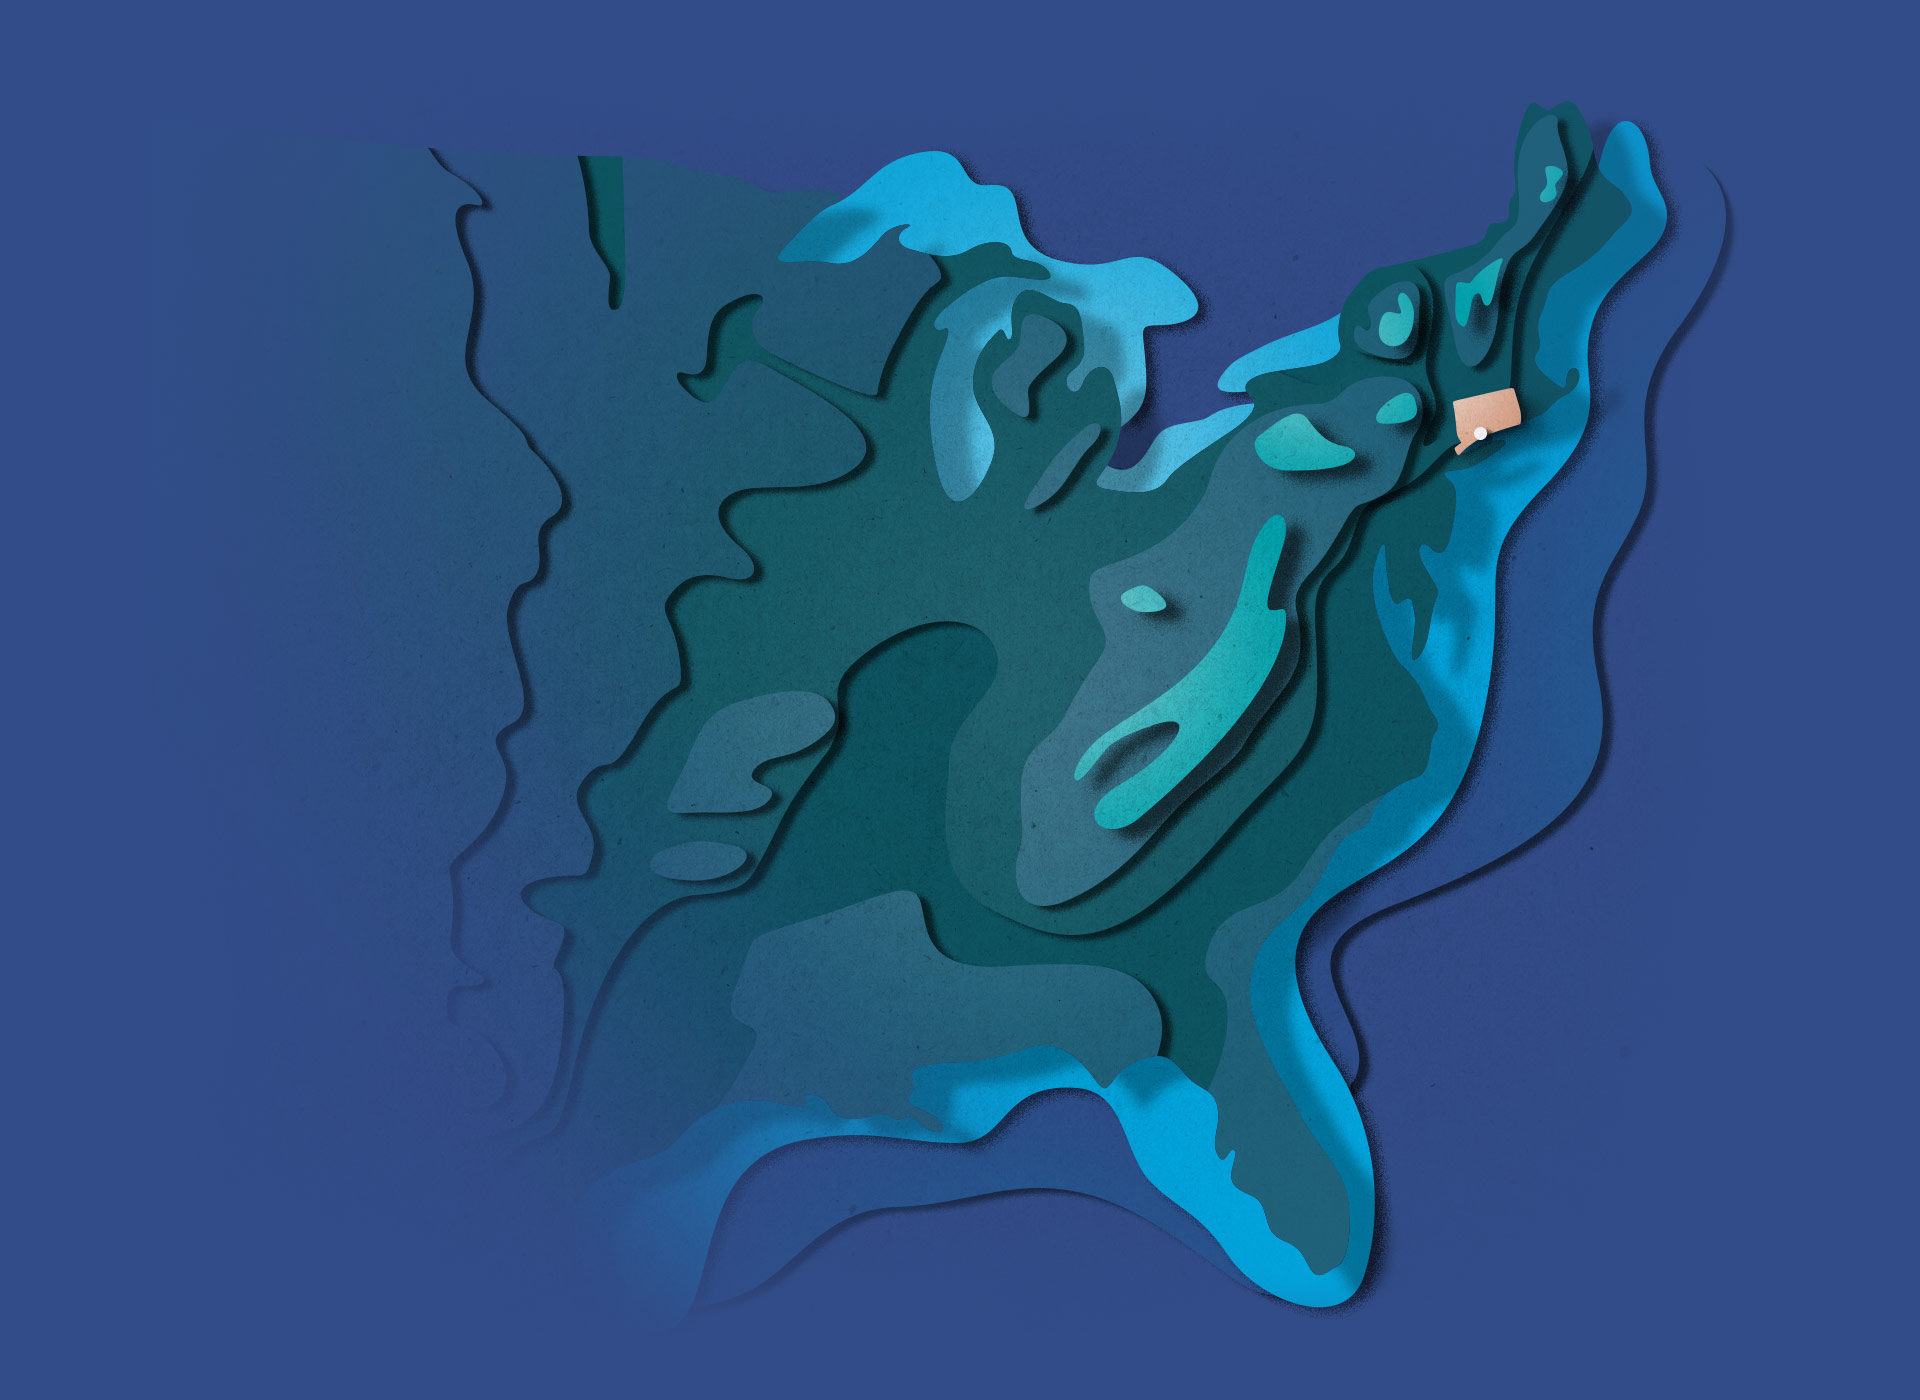 Layered topographical illustration of the united states, executed in a refined paper cut-out style. Southport Connecticut is highlighted.